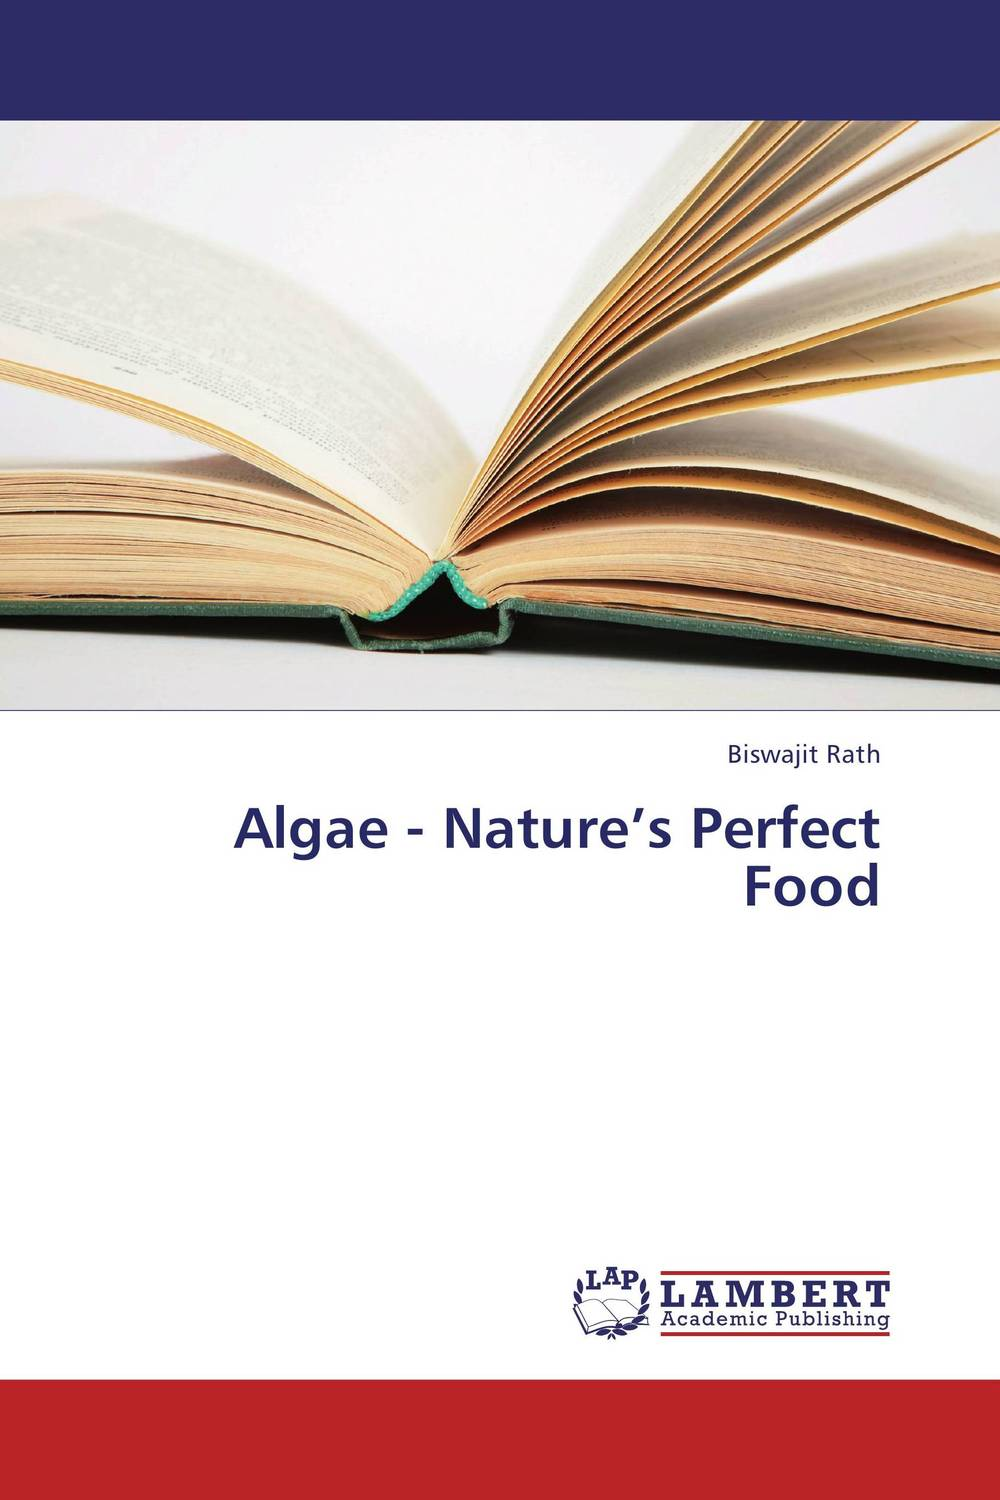 Algae - Nature's Perfect Food thermo operated water valves can be used in food processing equipments biomass boilers and hydraulic systems